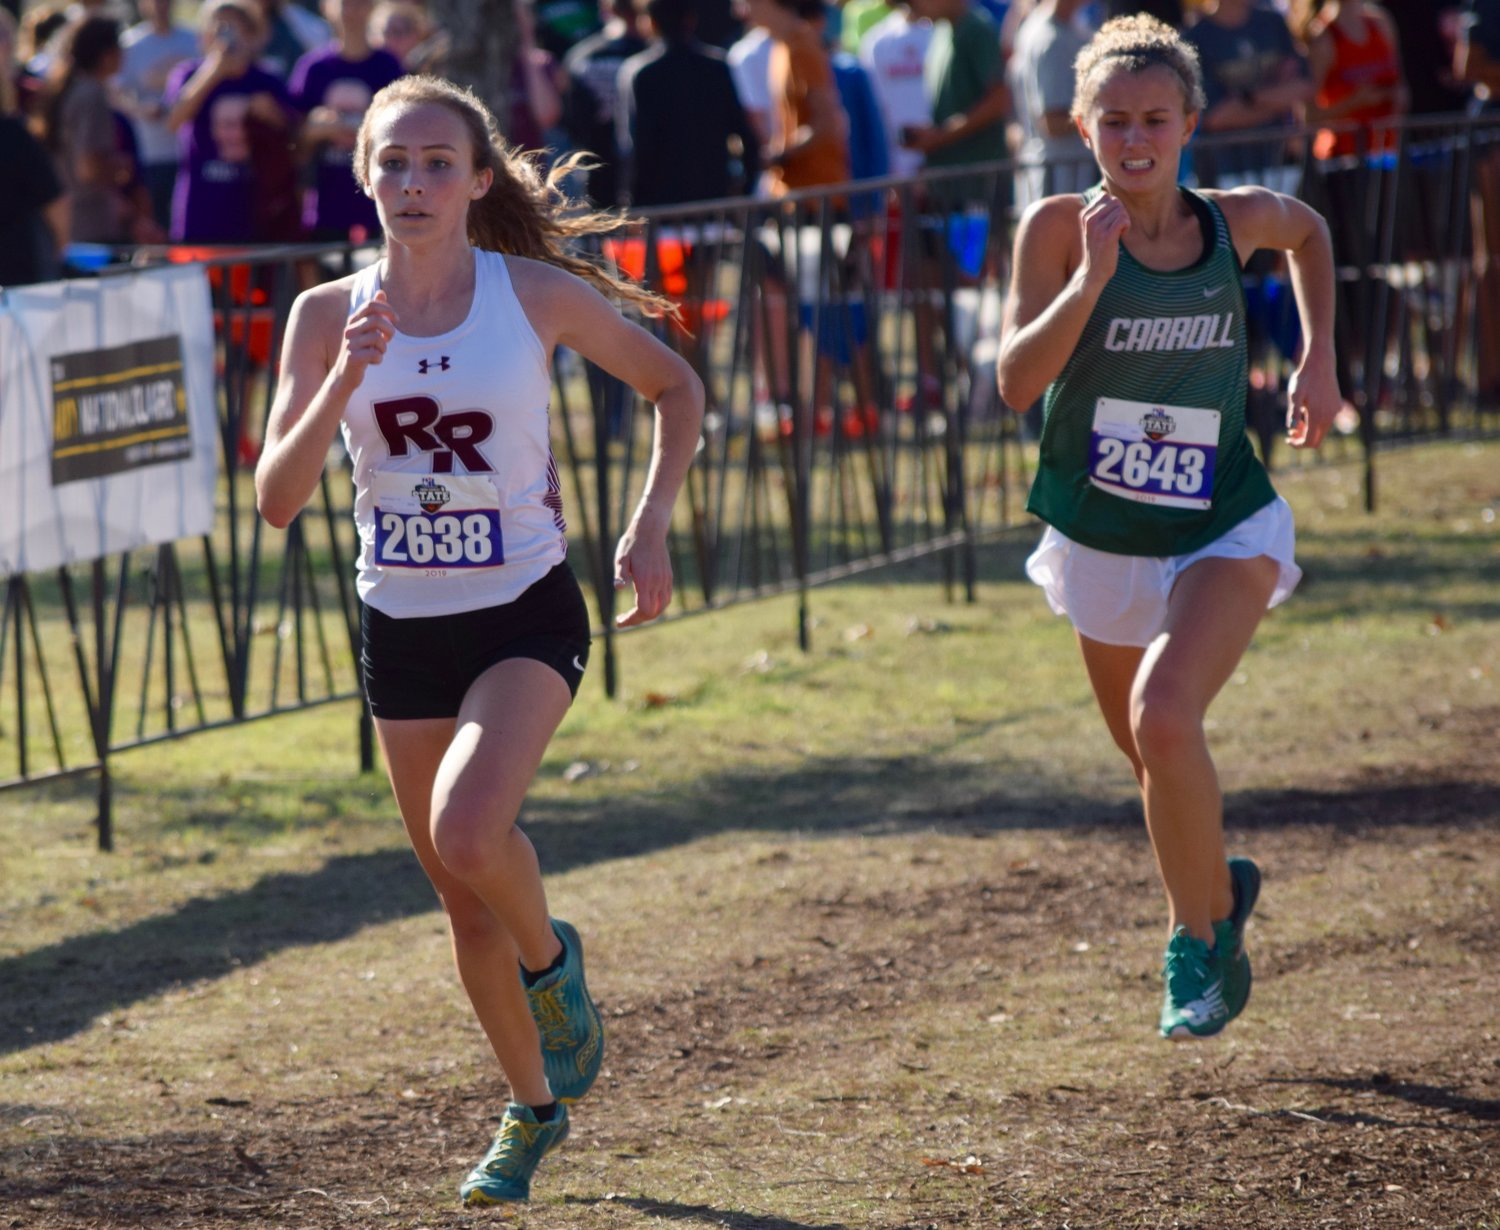 Round Rock runner Megan Nevlud, left, finished with a time of 18:14.29 at the state cross country meet Saturday at Old Settlers Park in Round Rock.